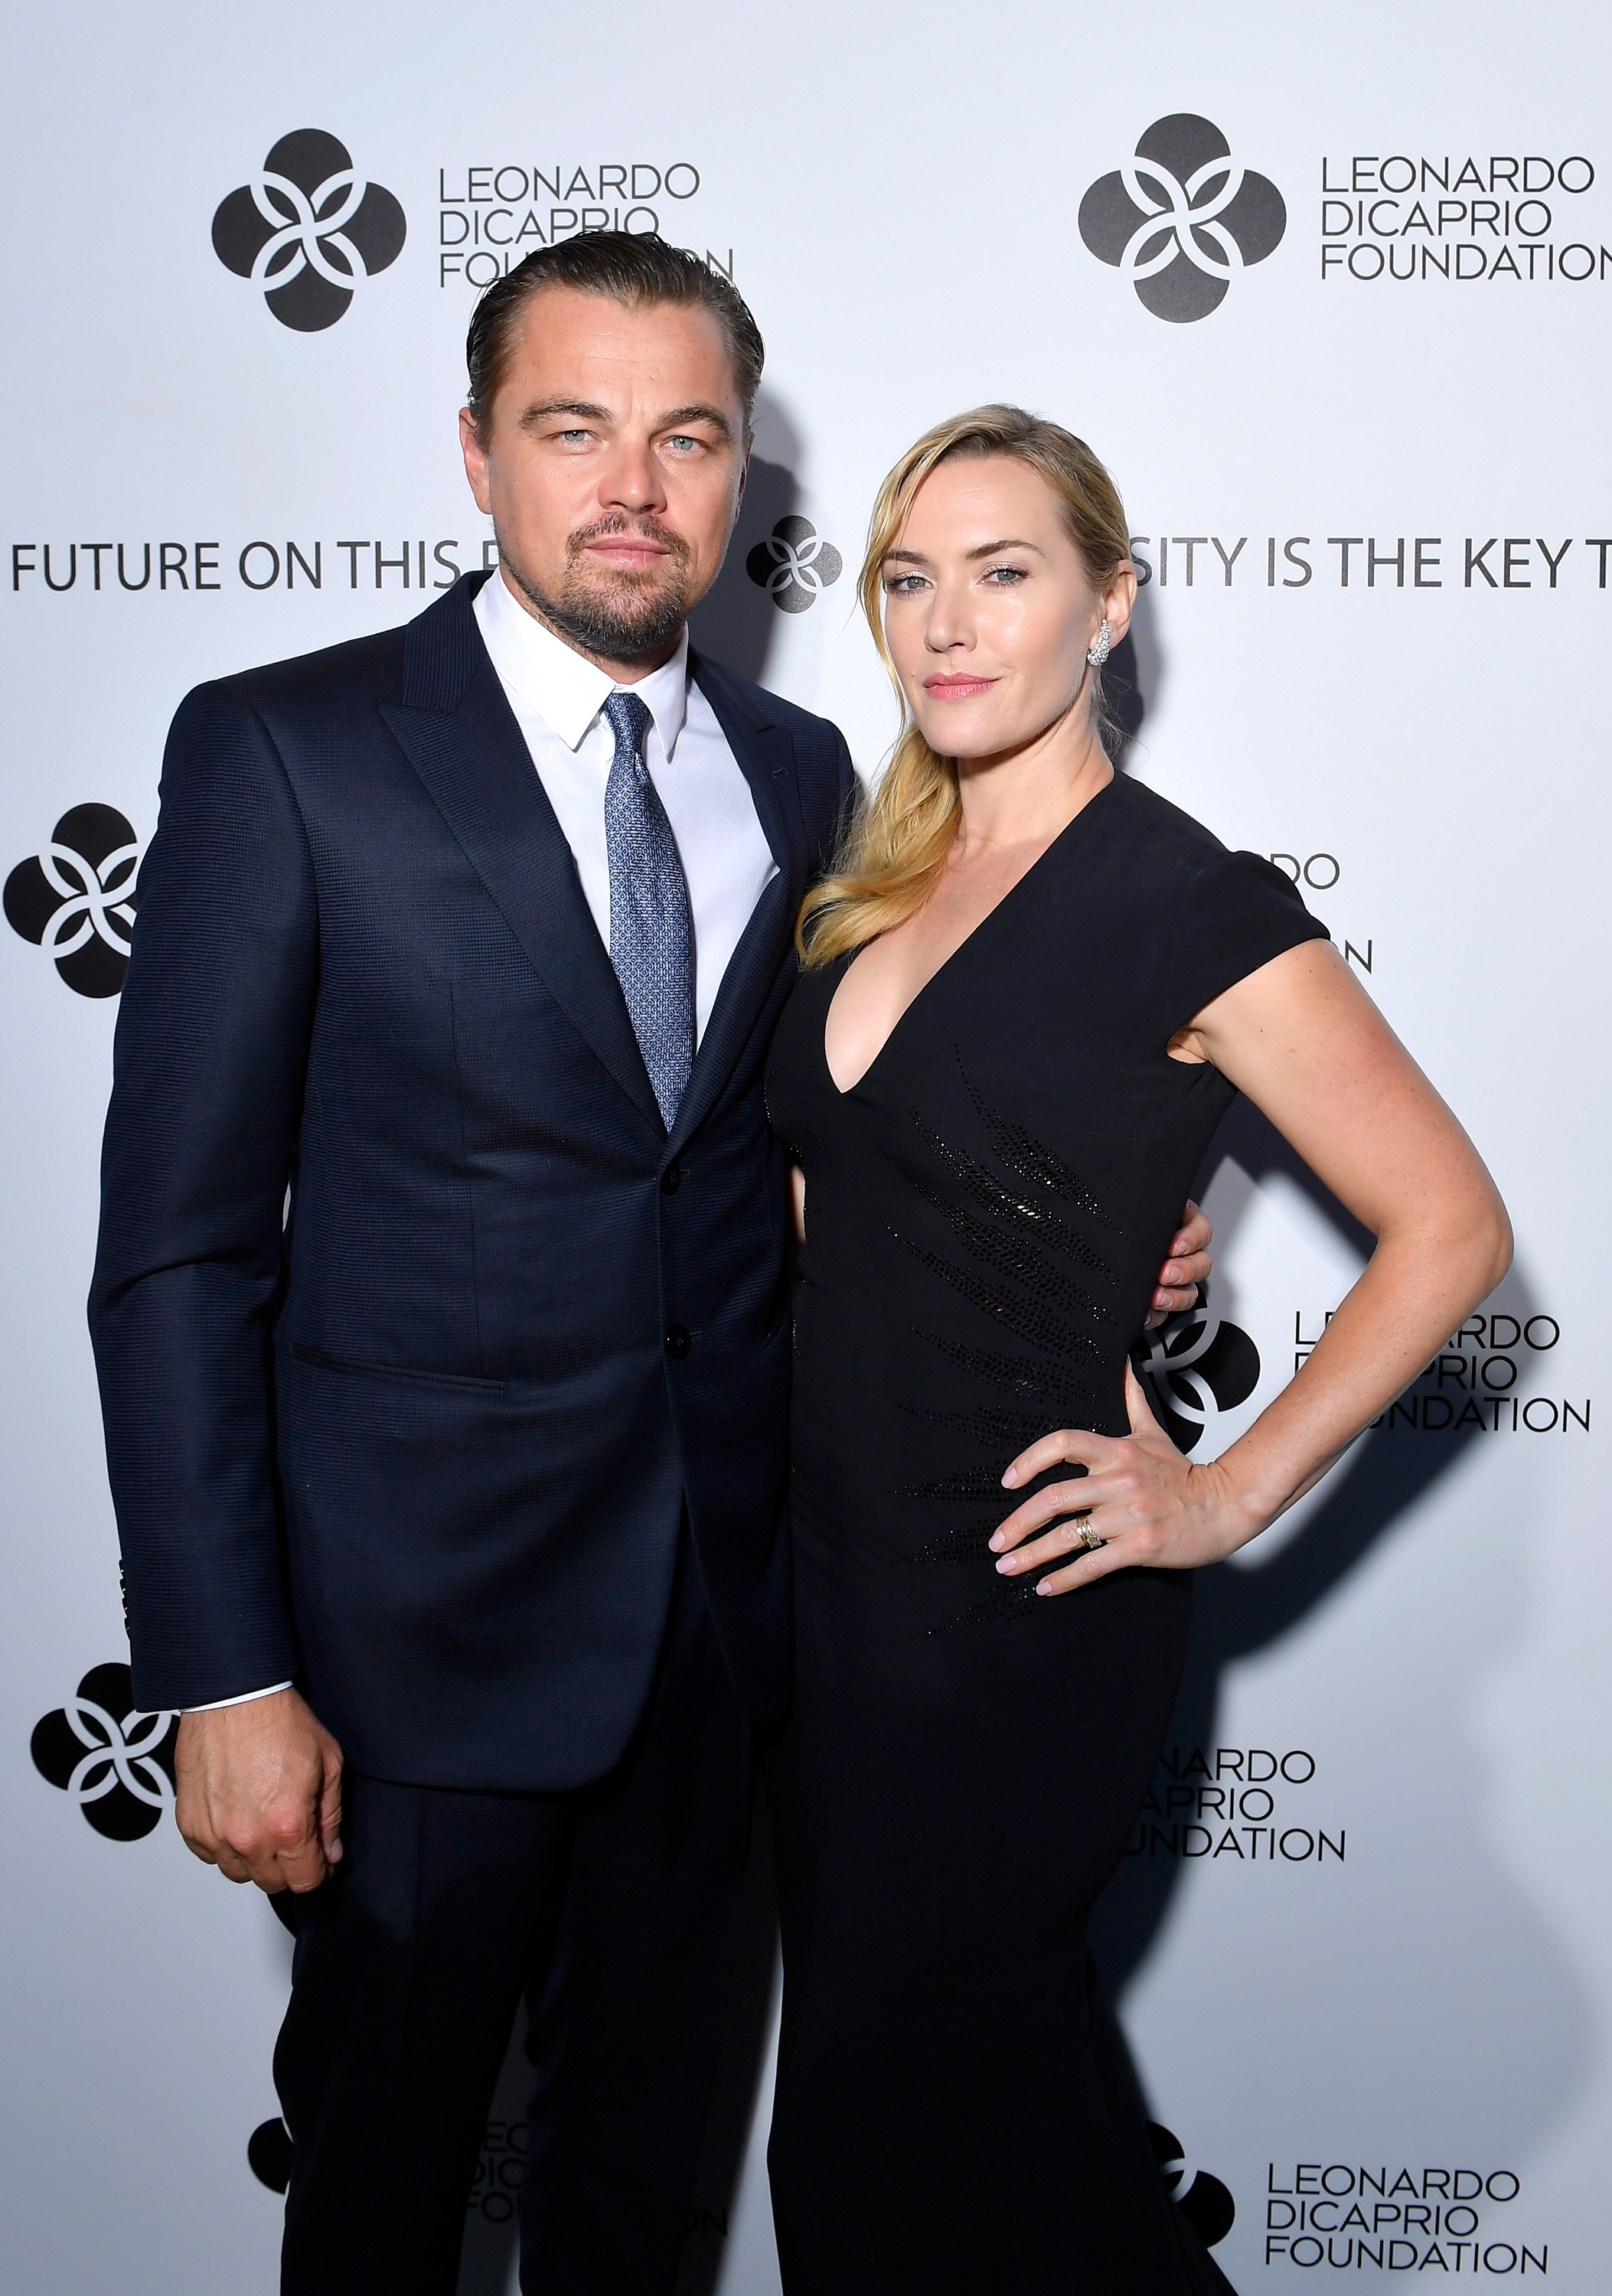 Leonardo DiCaprio and Kate Winslet attend the cocktail reception of the Leonardo DiCaprio Foundation 4th Annual Saint Tropez Gala at Domaine Bertaud Belieu on July 26, 2017.